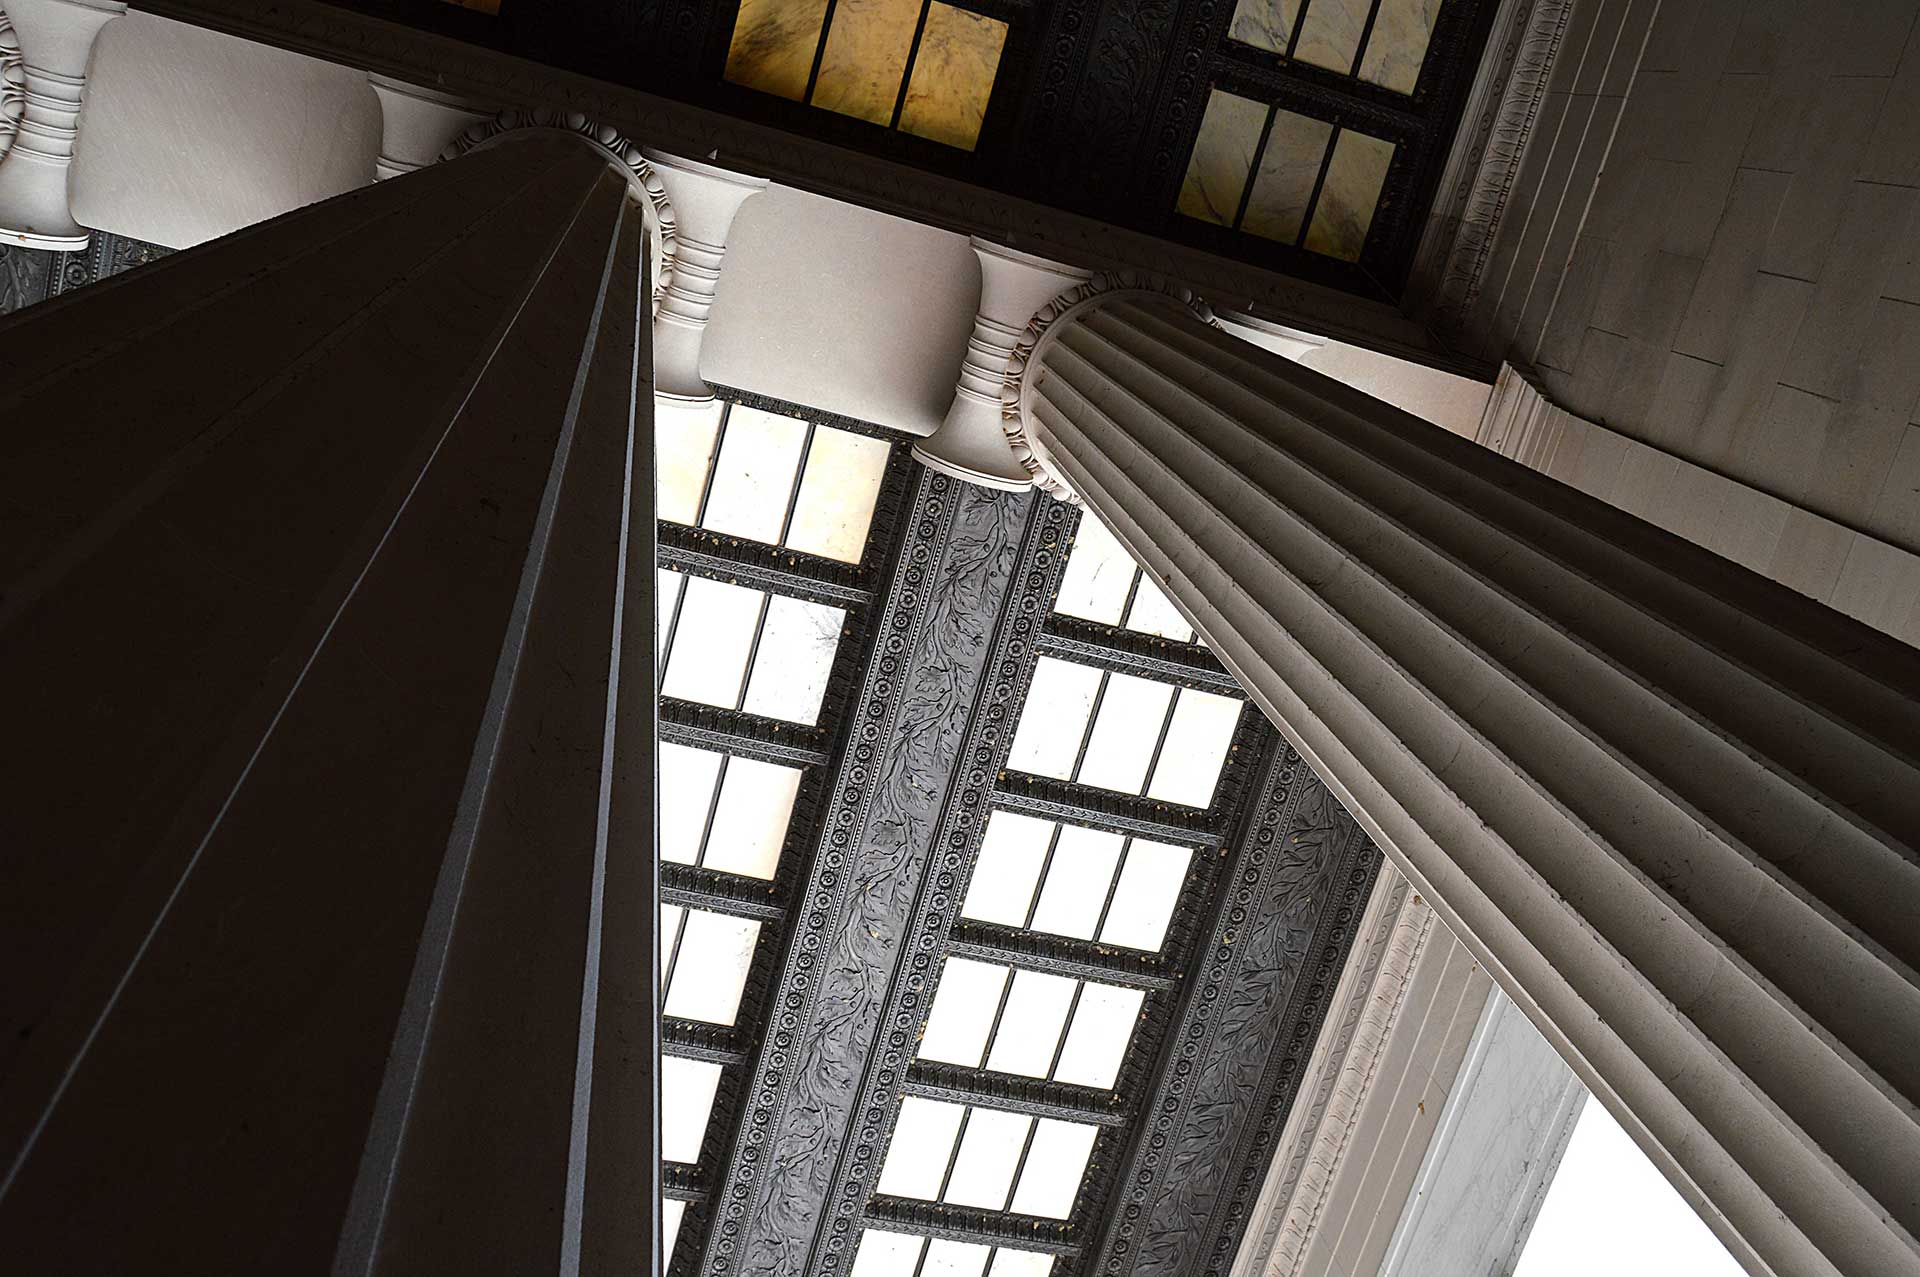 looking up towards ceiling at tall stone pillars